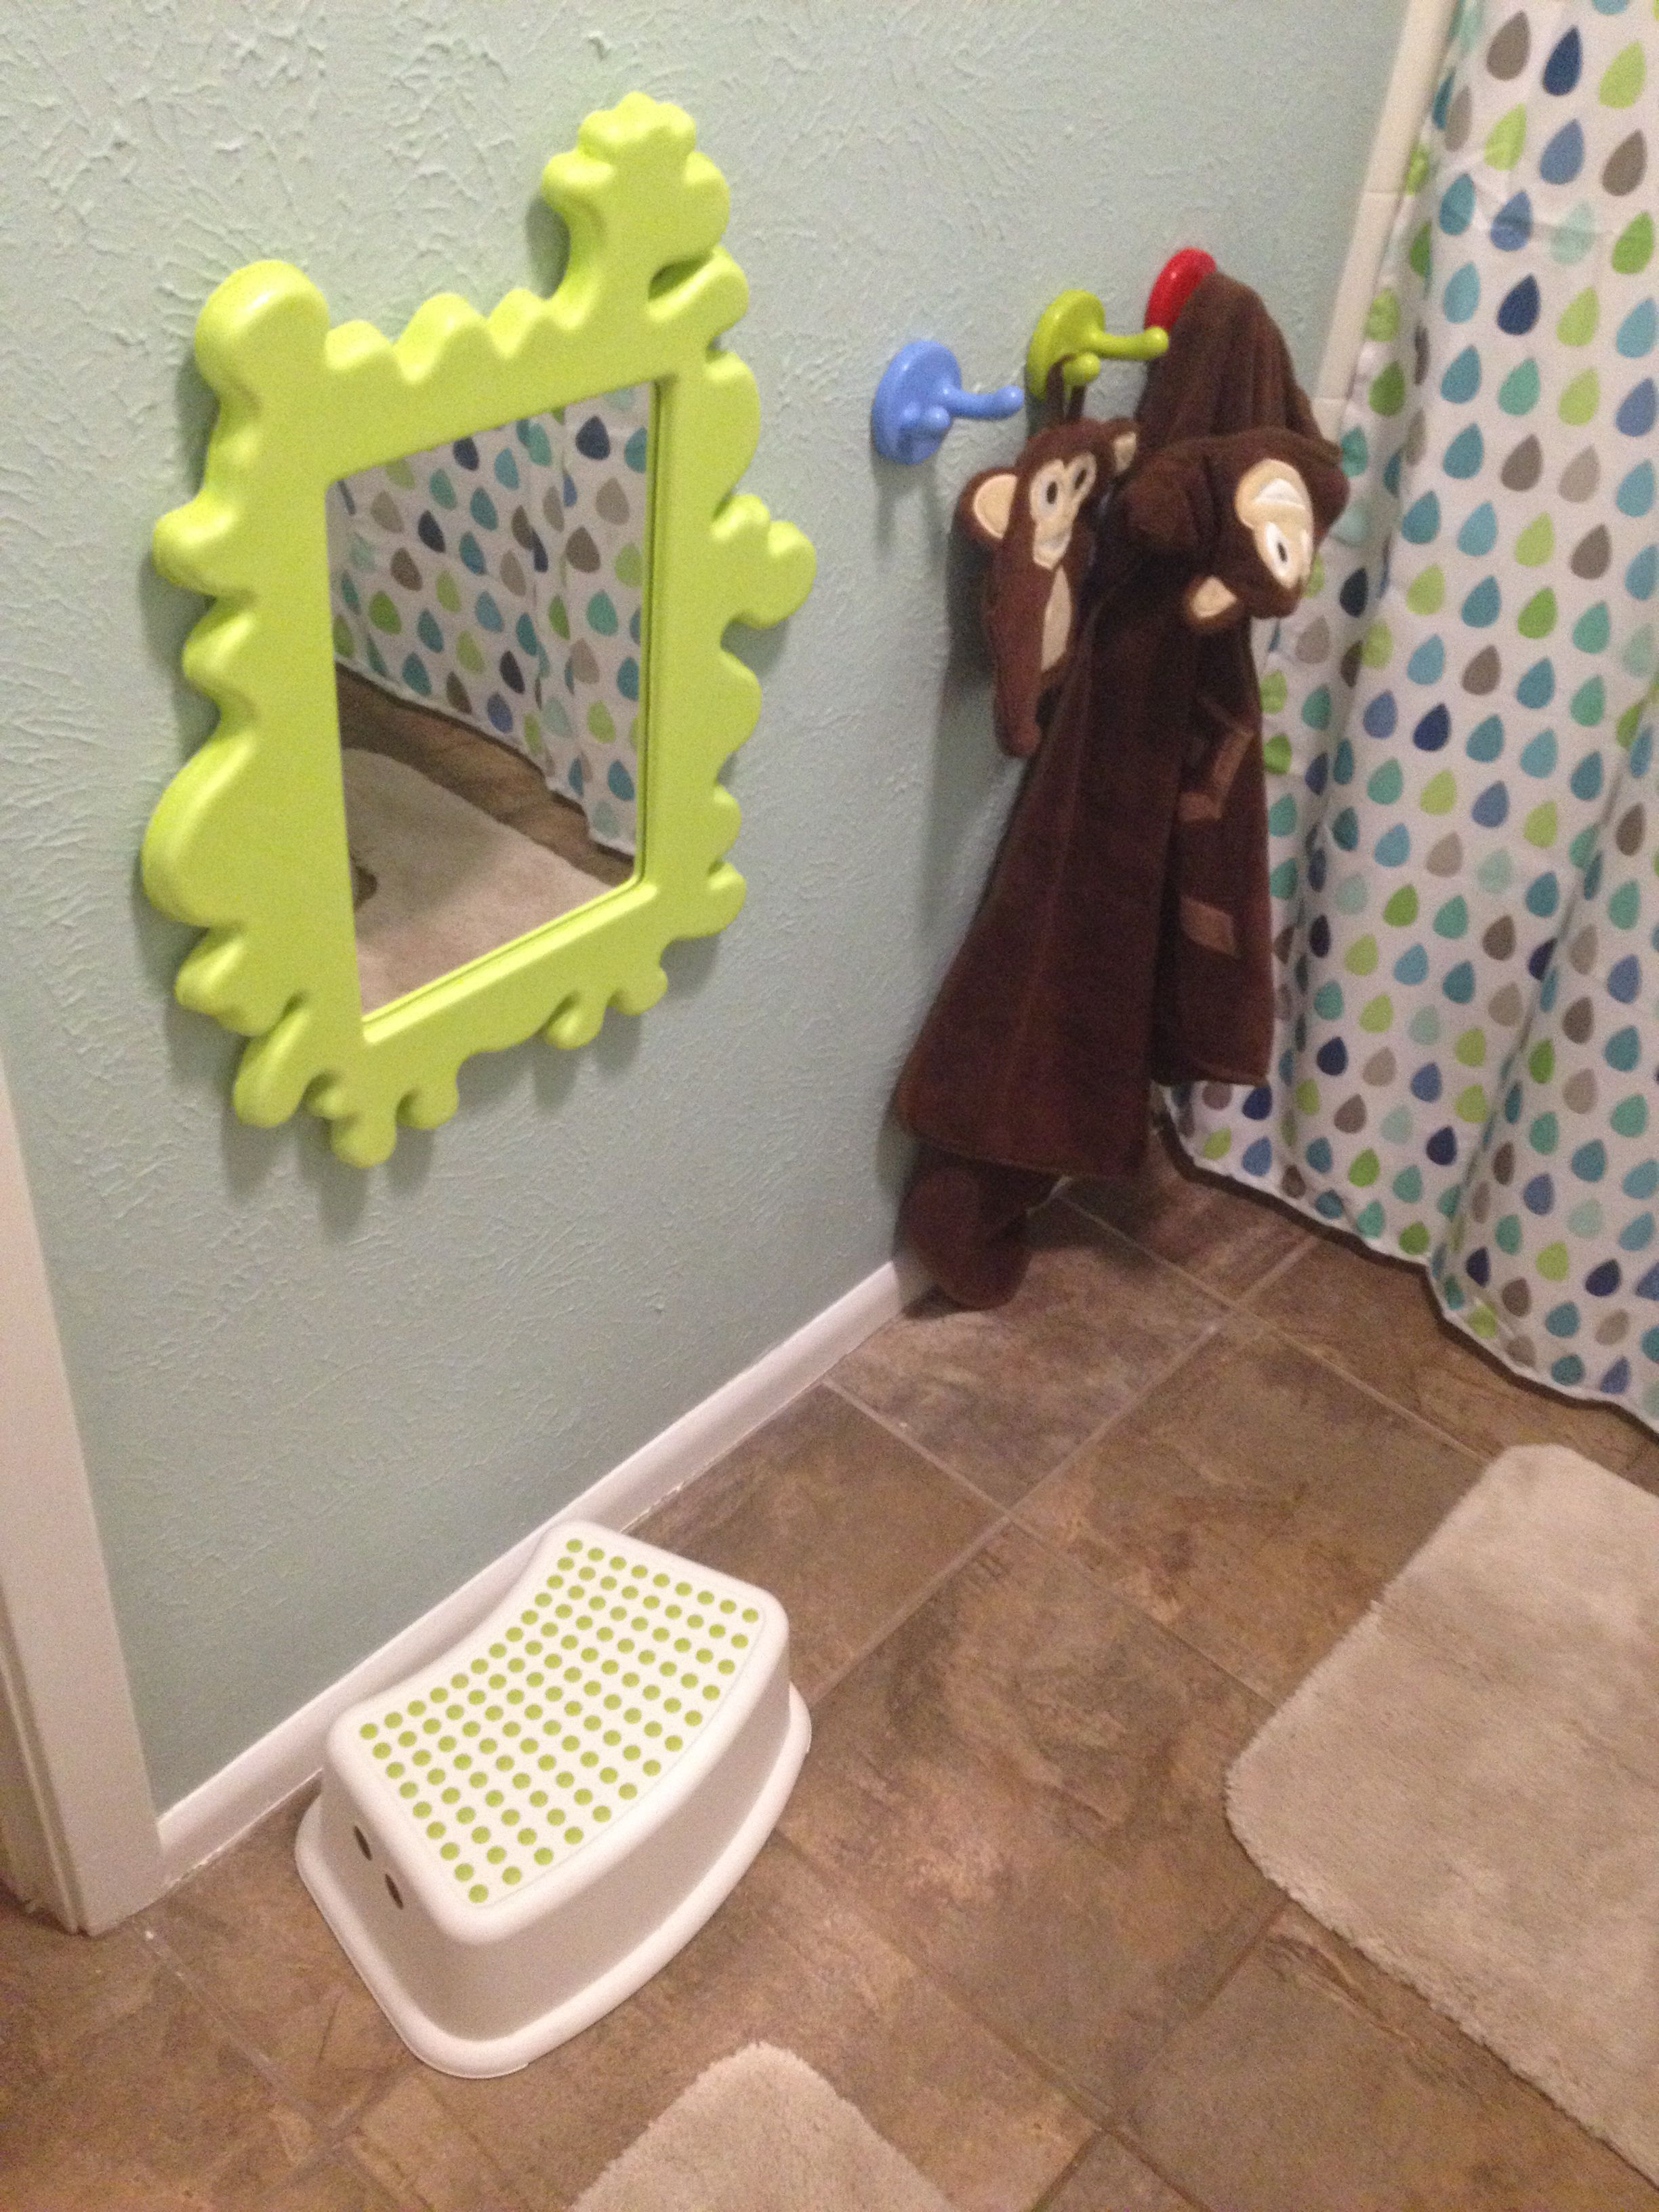 Ikea Toddler Hooks And Mirror In Bathroom Toddler Bathroom Bathroom Kids Girls Bathroom